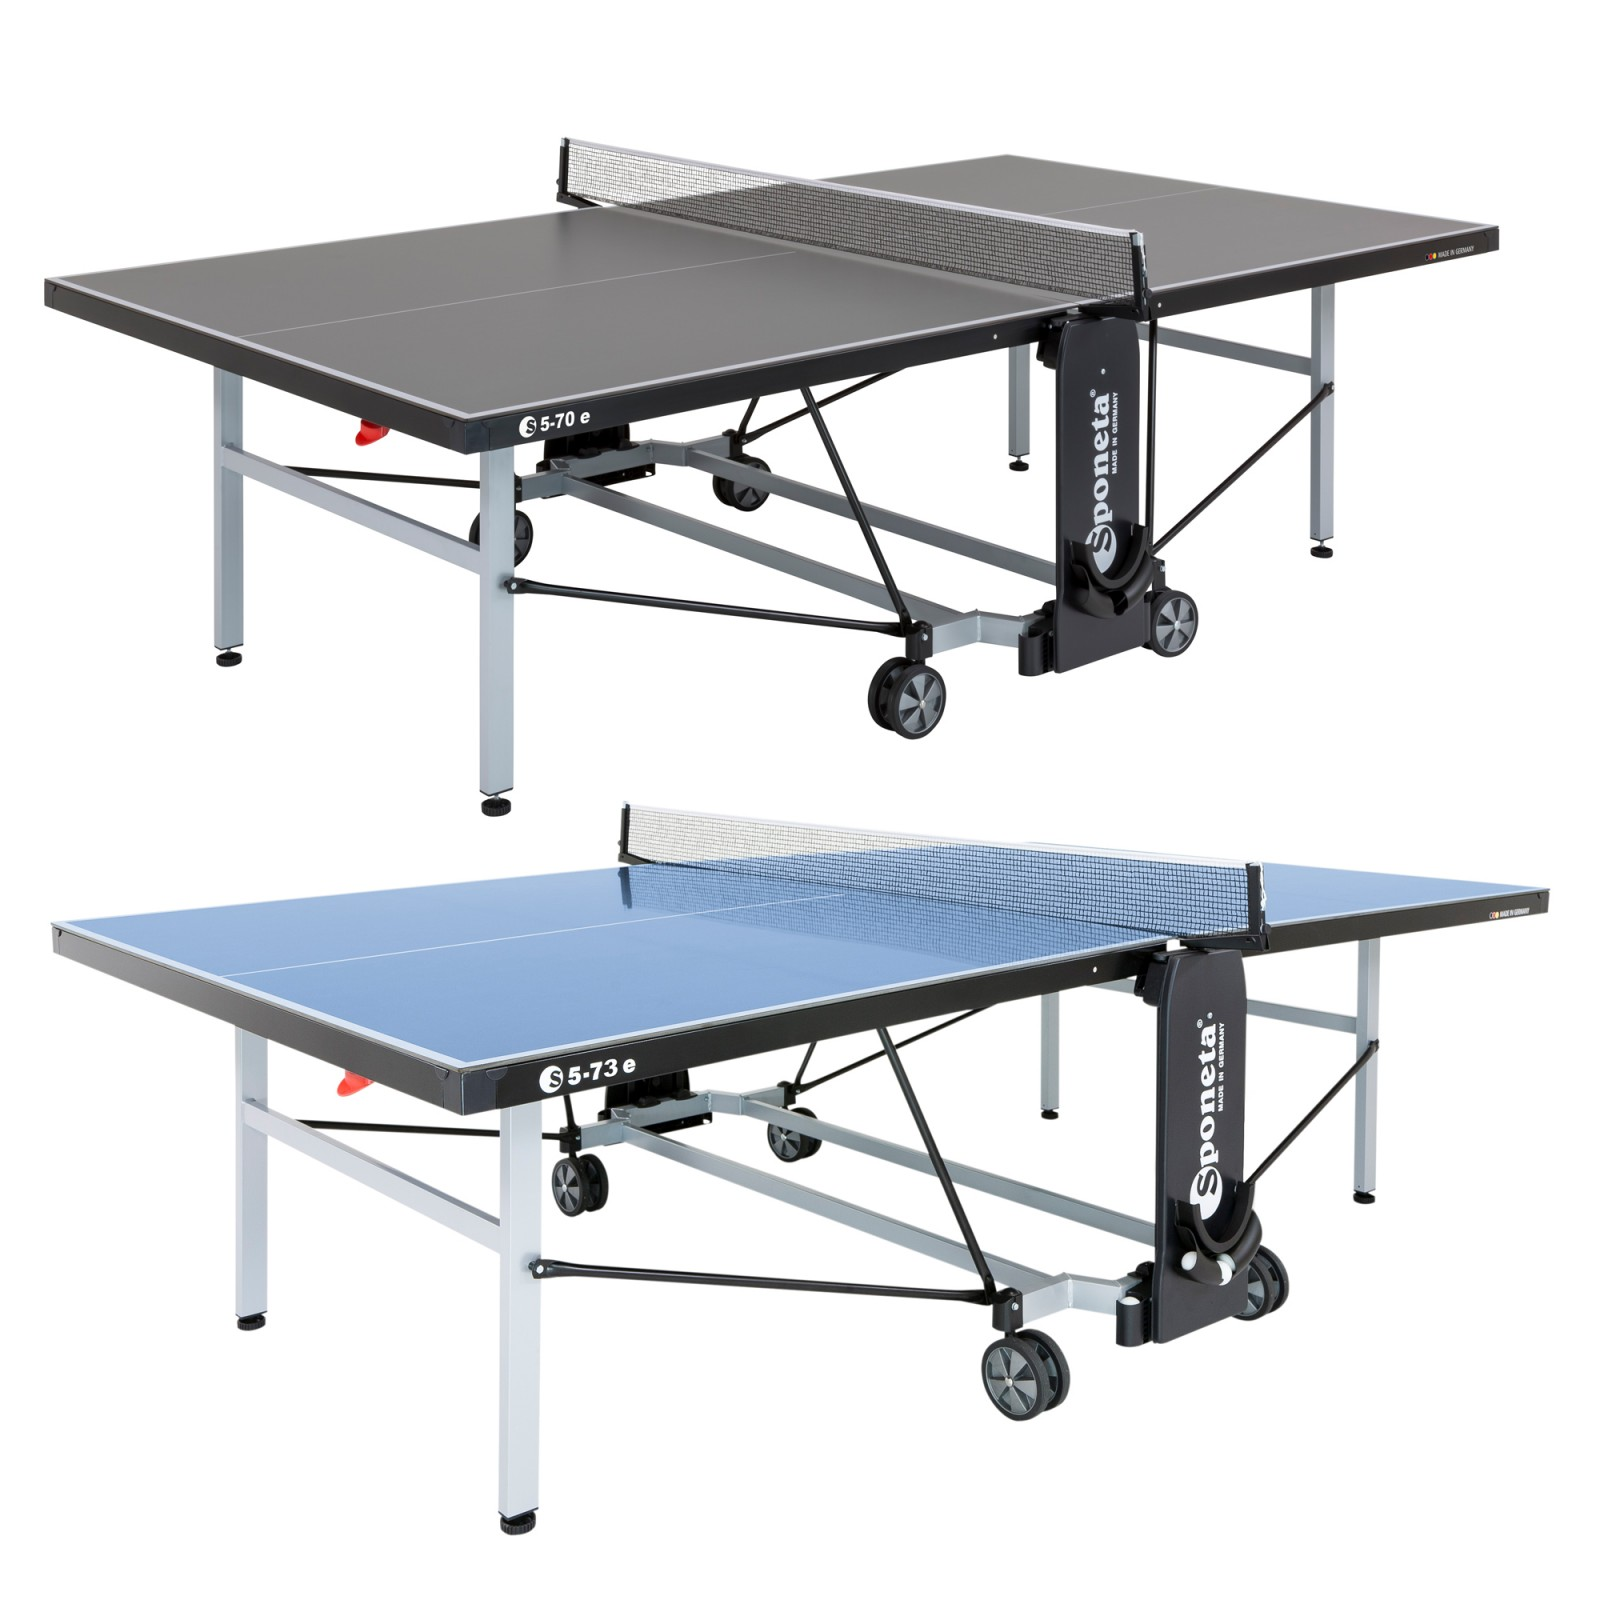 sponeta table tennis table s5 73e product picture close zoom product picture loading zoom